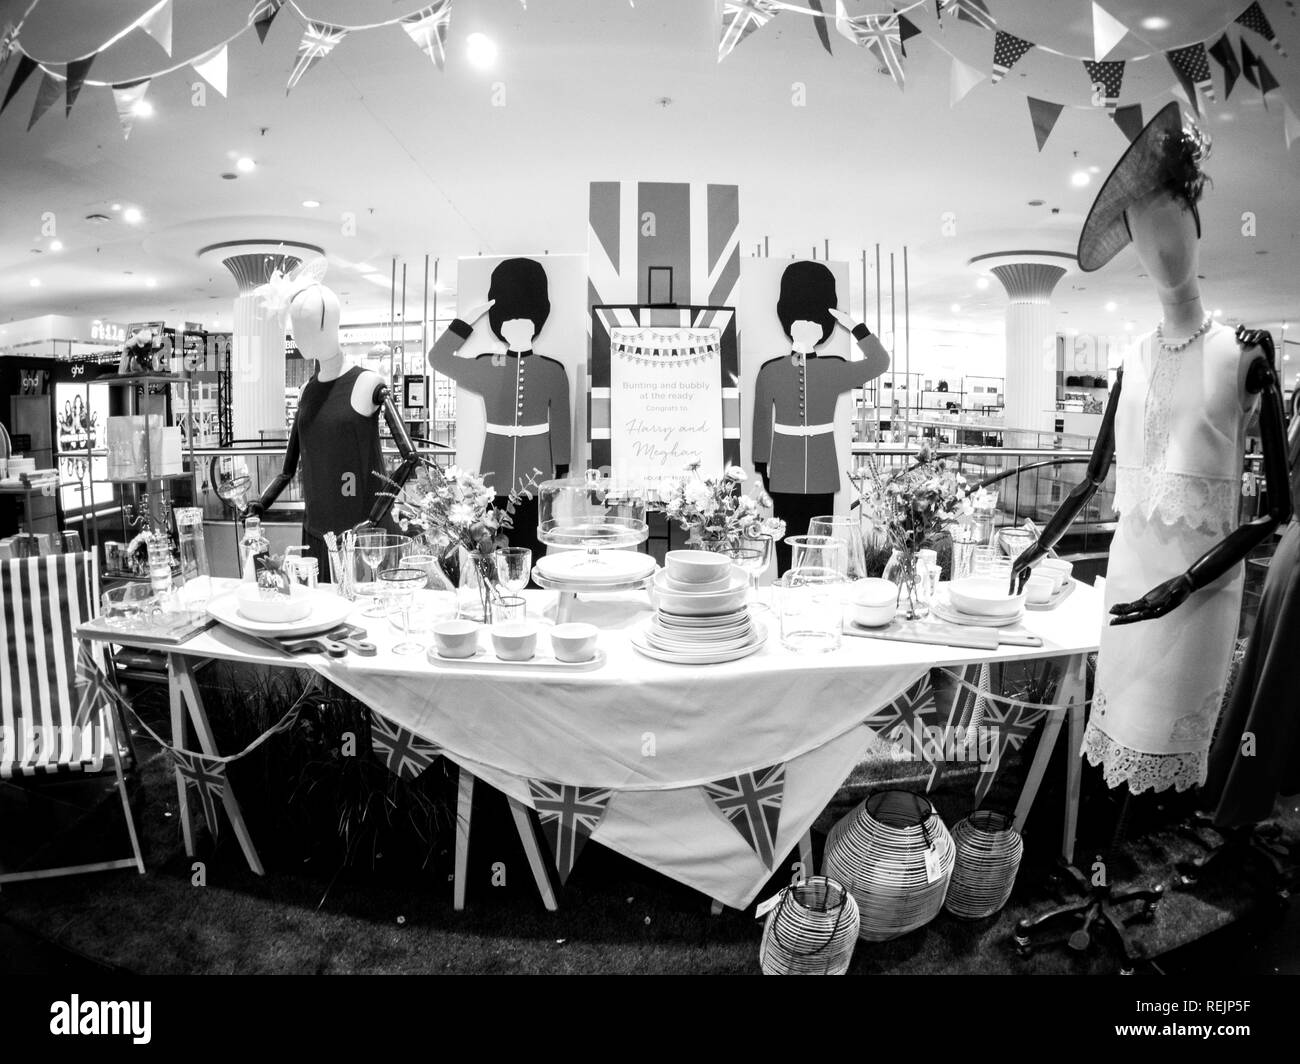 LONDON, UNITED KINGDOM - MAY 18, 2018: Congratulation message House of Fraser store to HRH Prince Harry of Wales KCVO and Ms Meghan Markle on Regent street for Royal Wedding - black and white Stock Photo